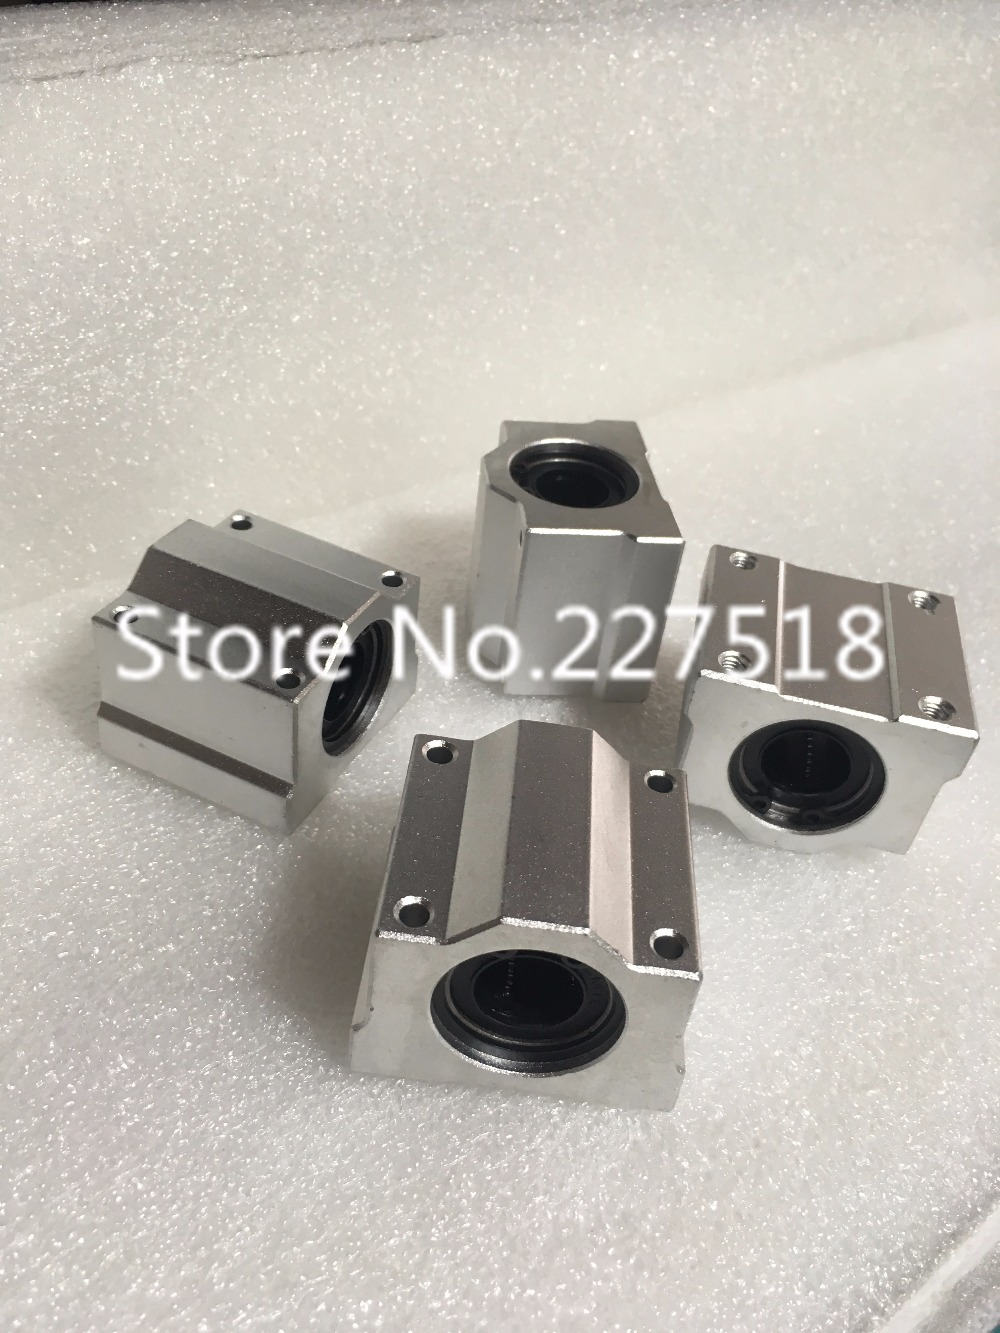 1pc SCS50UU 50mm linear guide Linear axis ball bearing block with LM50UU bush, pillow block linear unit for CNC part scs50uu linear ball bearing xyz table cnc router motion xyz slide block unit for 50mm linear shaft